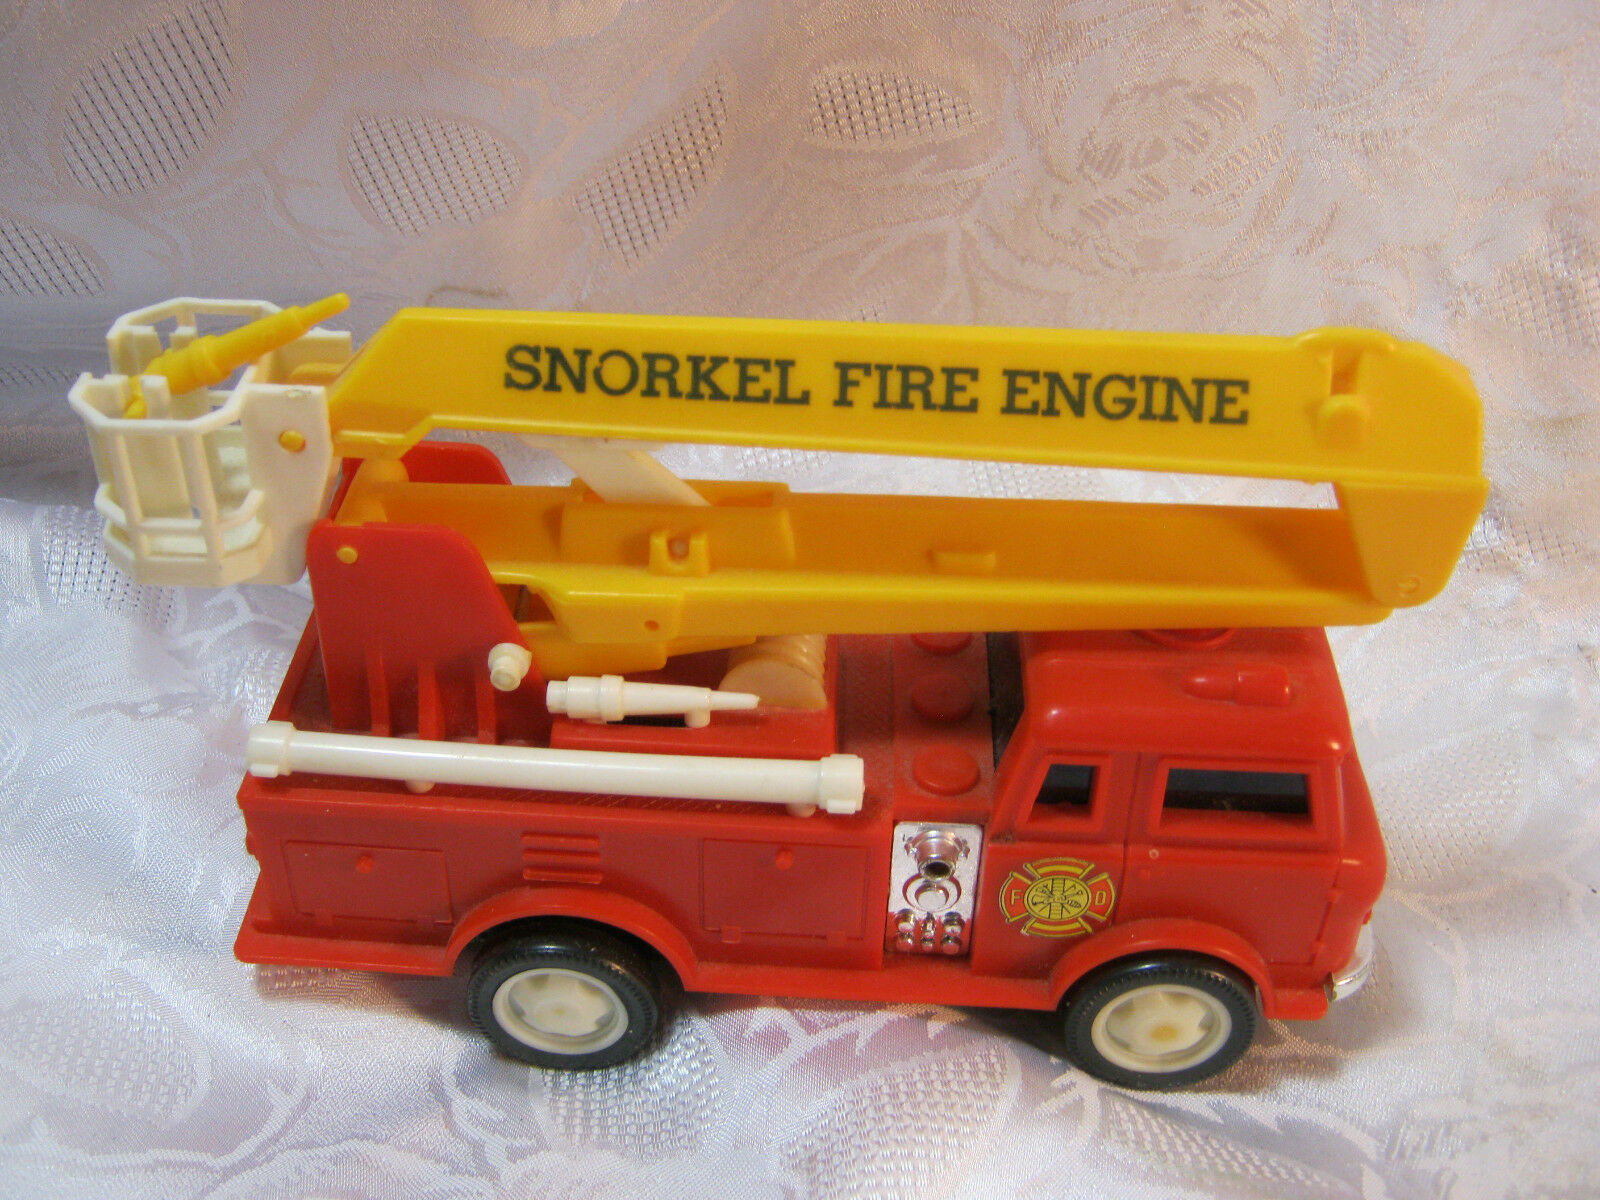 Snorkel Fire Engine battery op toy 1970's vintage Made in Hong Kong